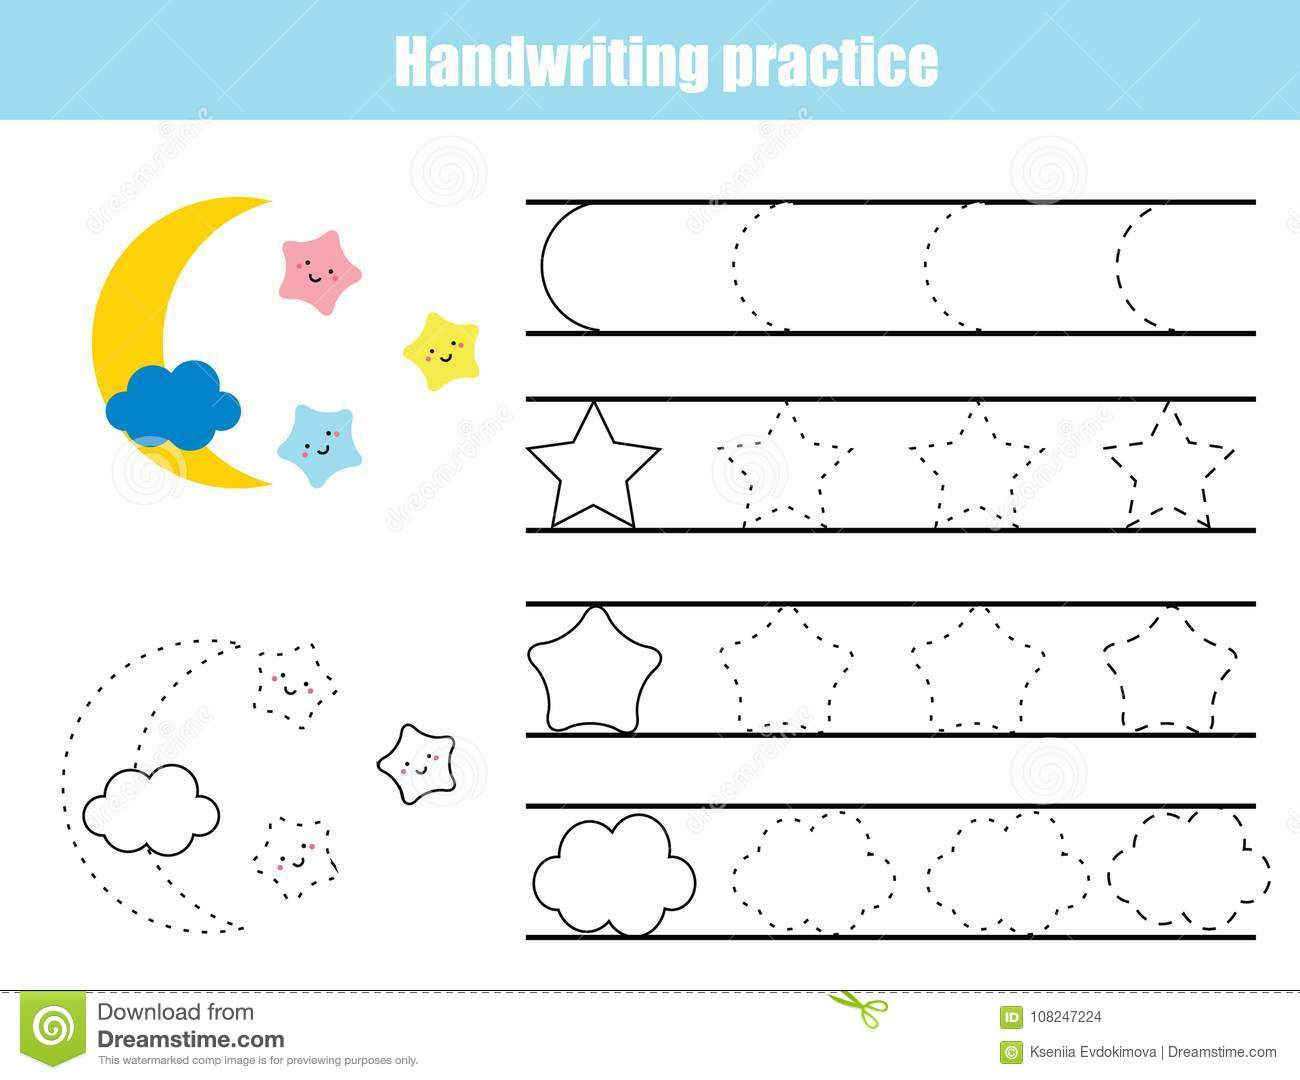 Handwriting Practice Sheet Educational Children Game Printable Worksheet For Kids Writing